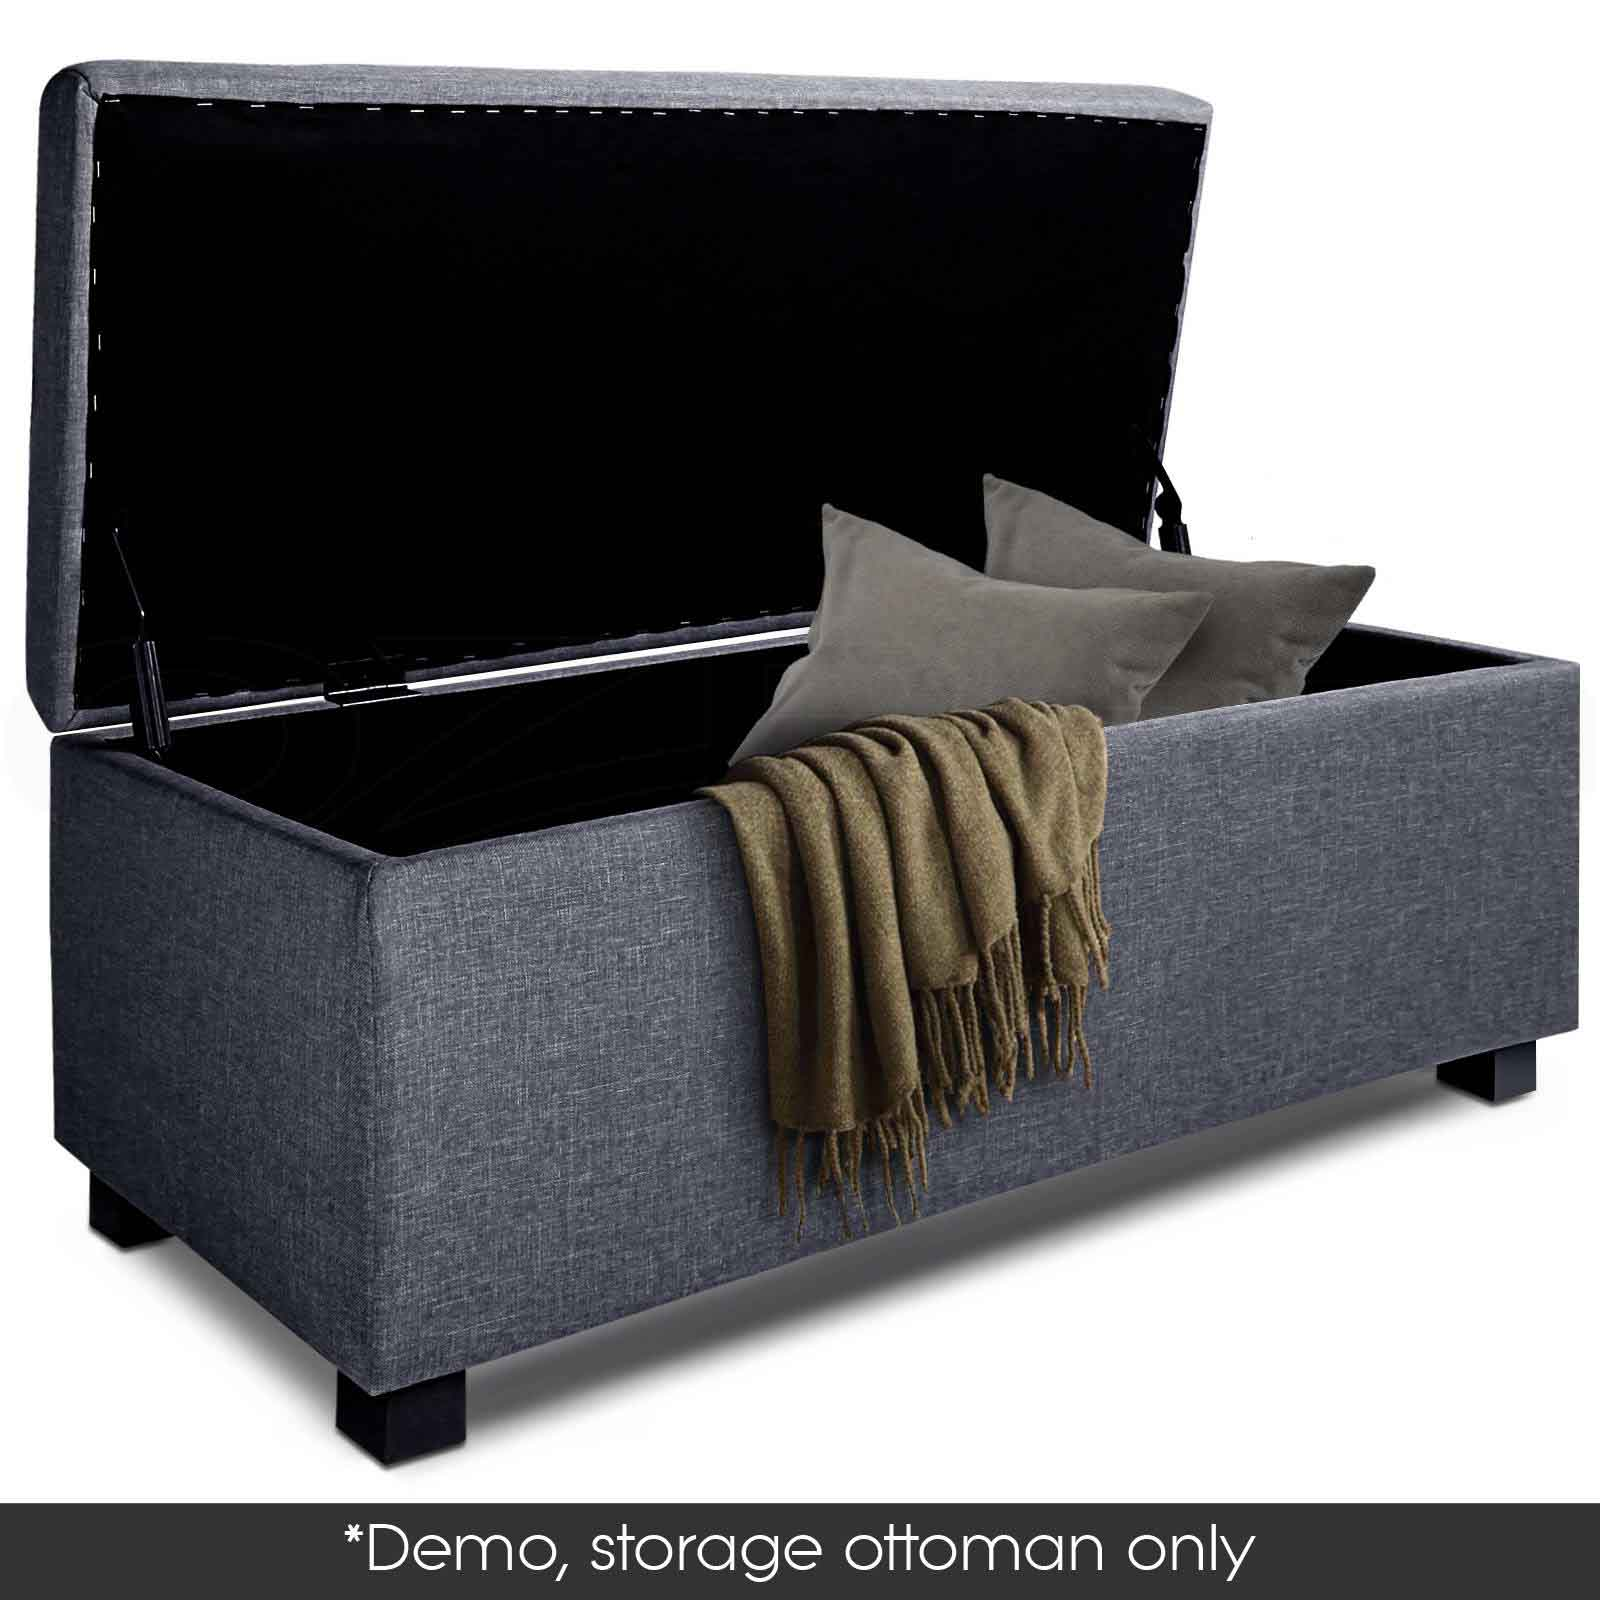 Blanket box storage ottoman pu leather fabric chest toy foot stool bed ebay - Seat at foot of bed ...